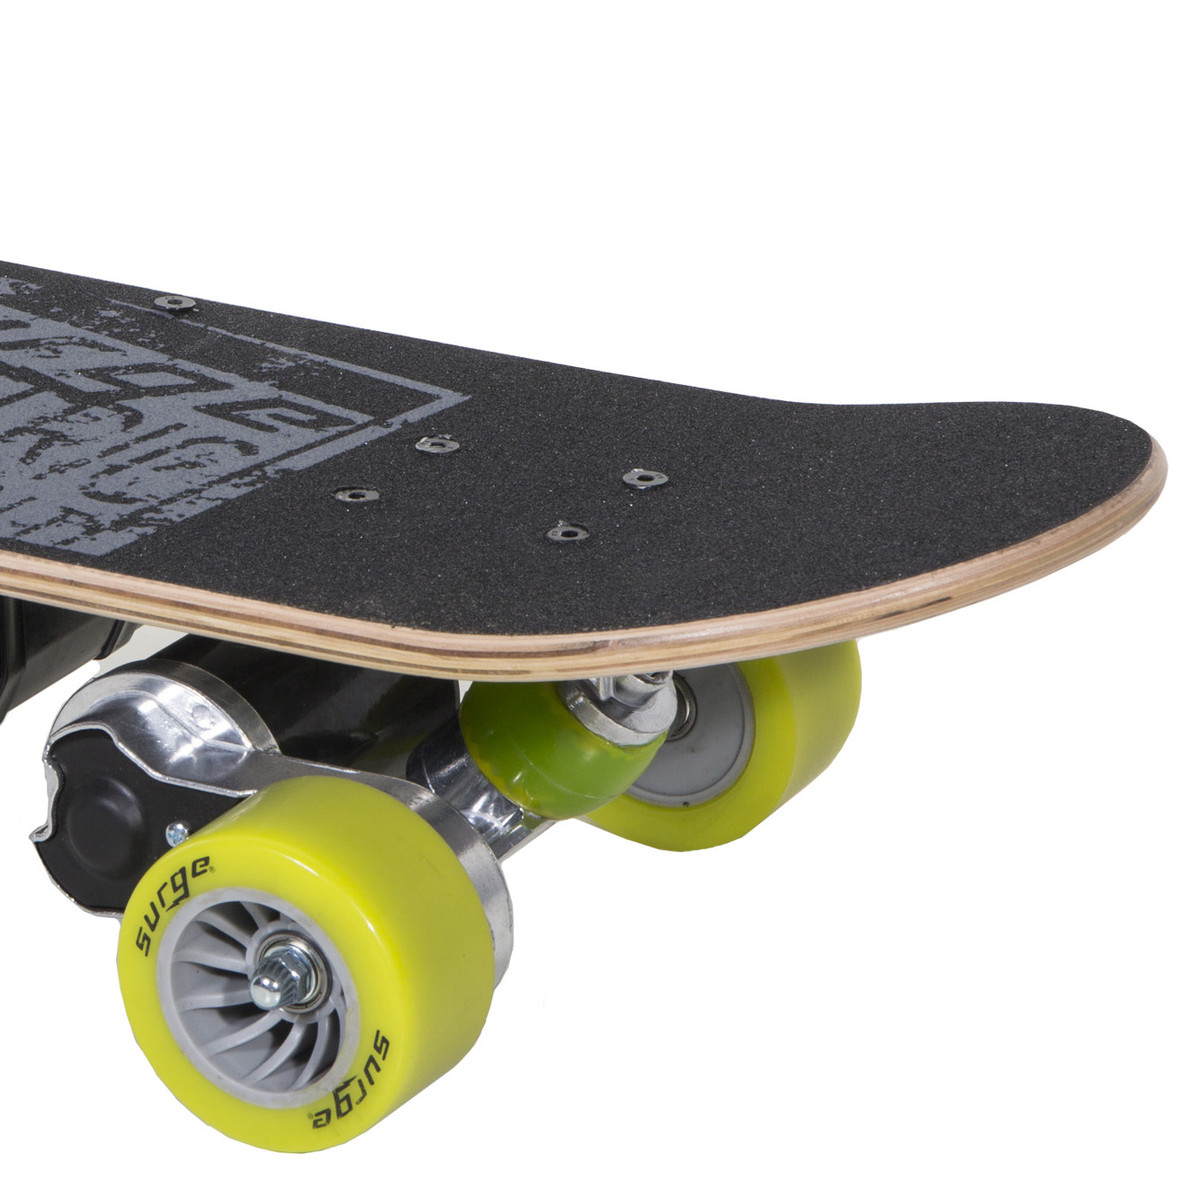 Dynacraft Surge 24V Electric Skateboard – Kid Friendly, 3 Speeds